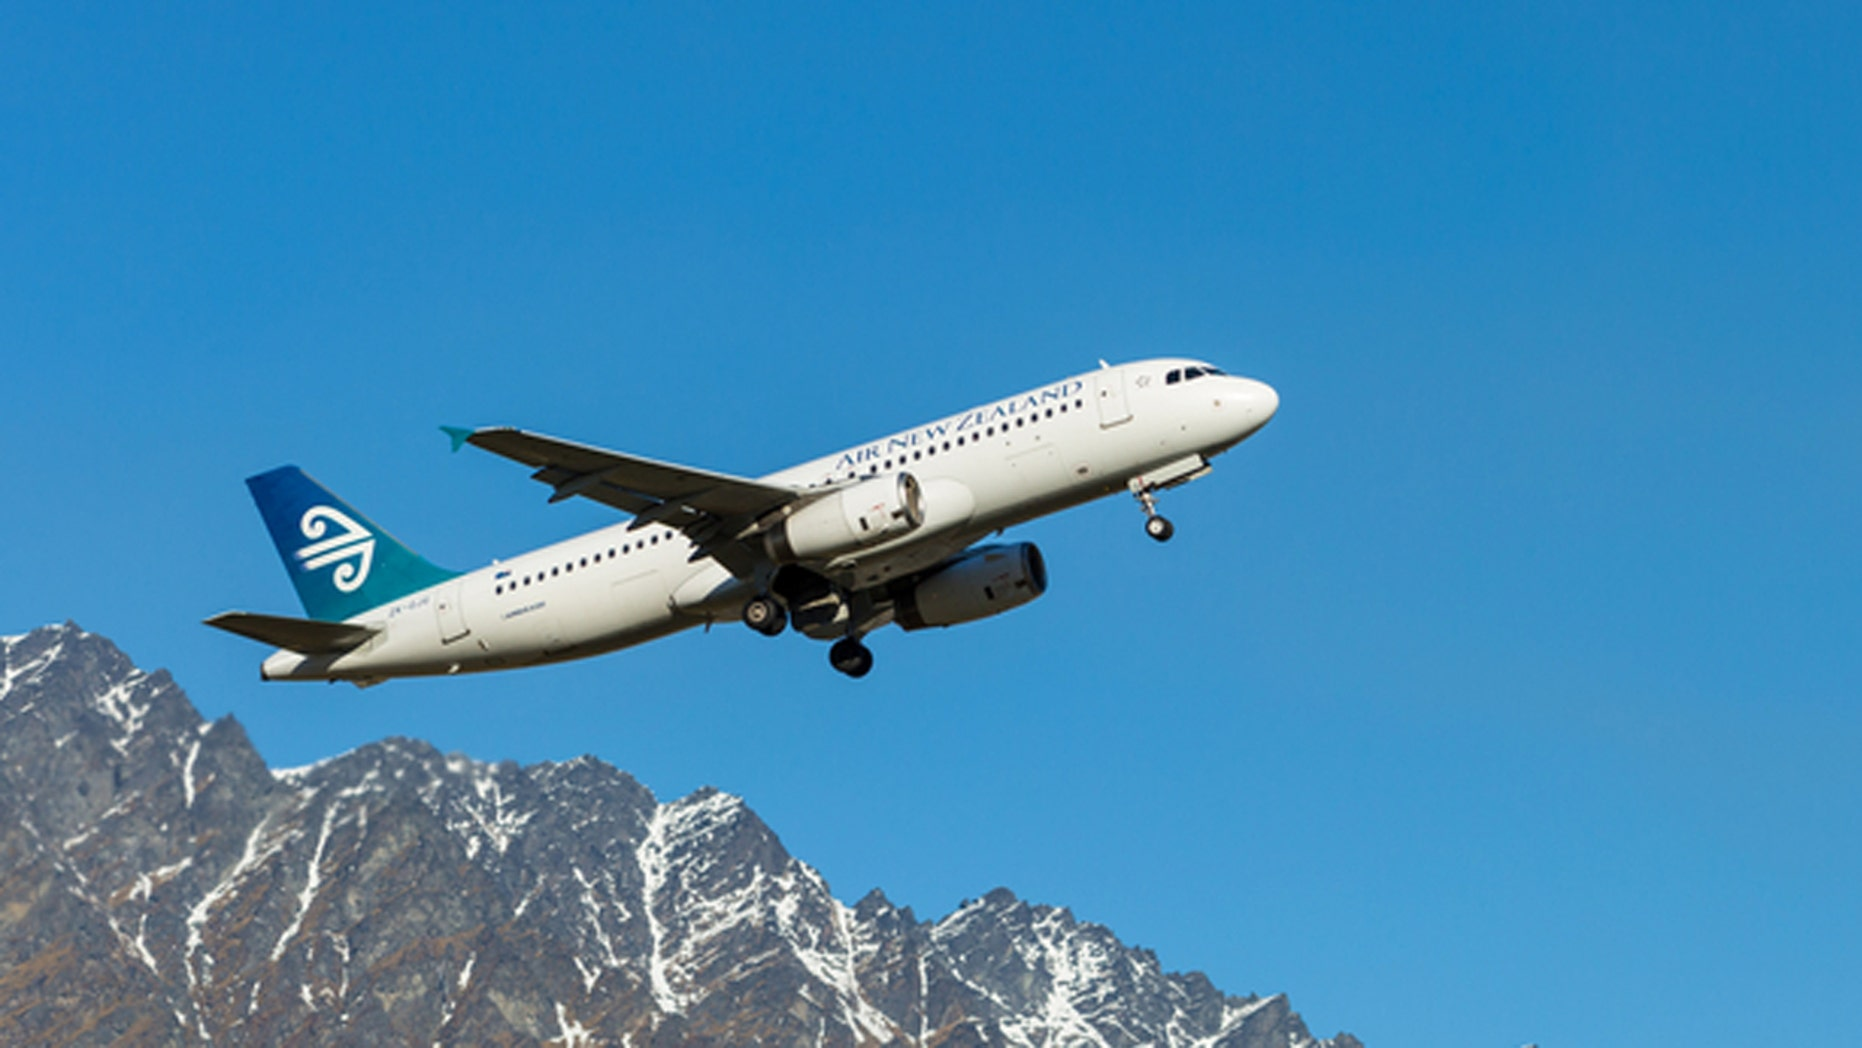 New Zealand's national carrier has been voted as the world's top airline.